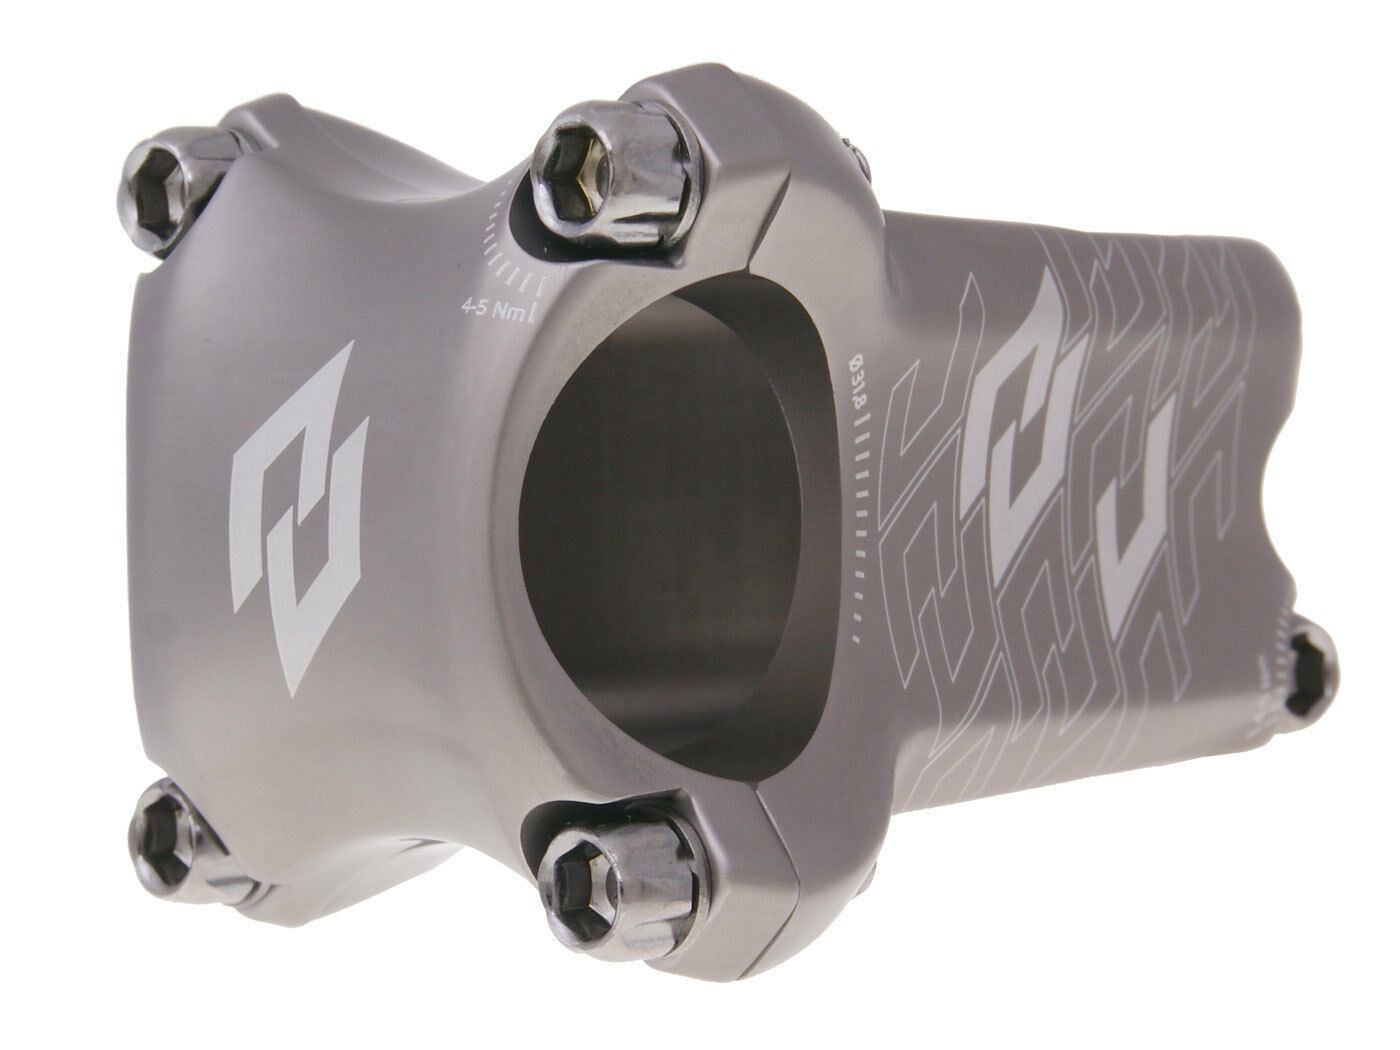 N 8 tive enduro voladizo grabación 31,8mm gris downhill MTB mountain bike manillar